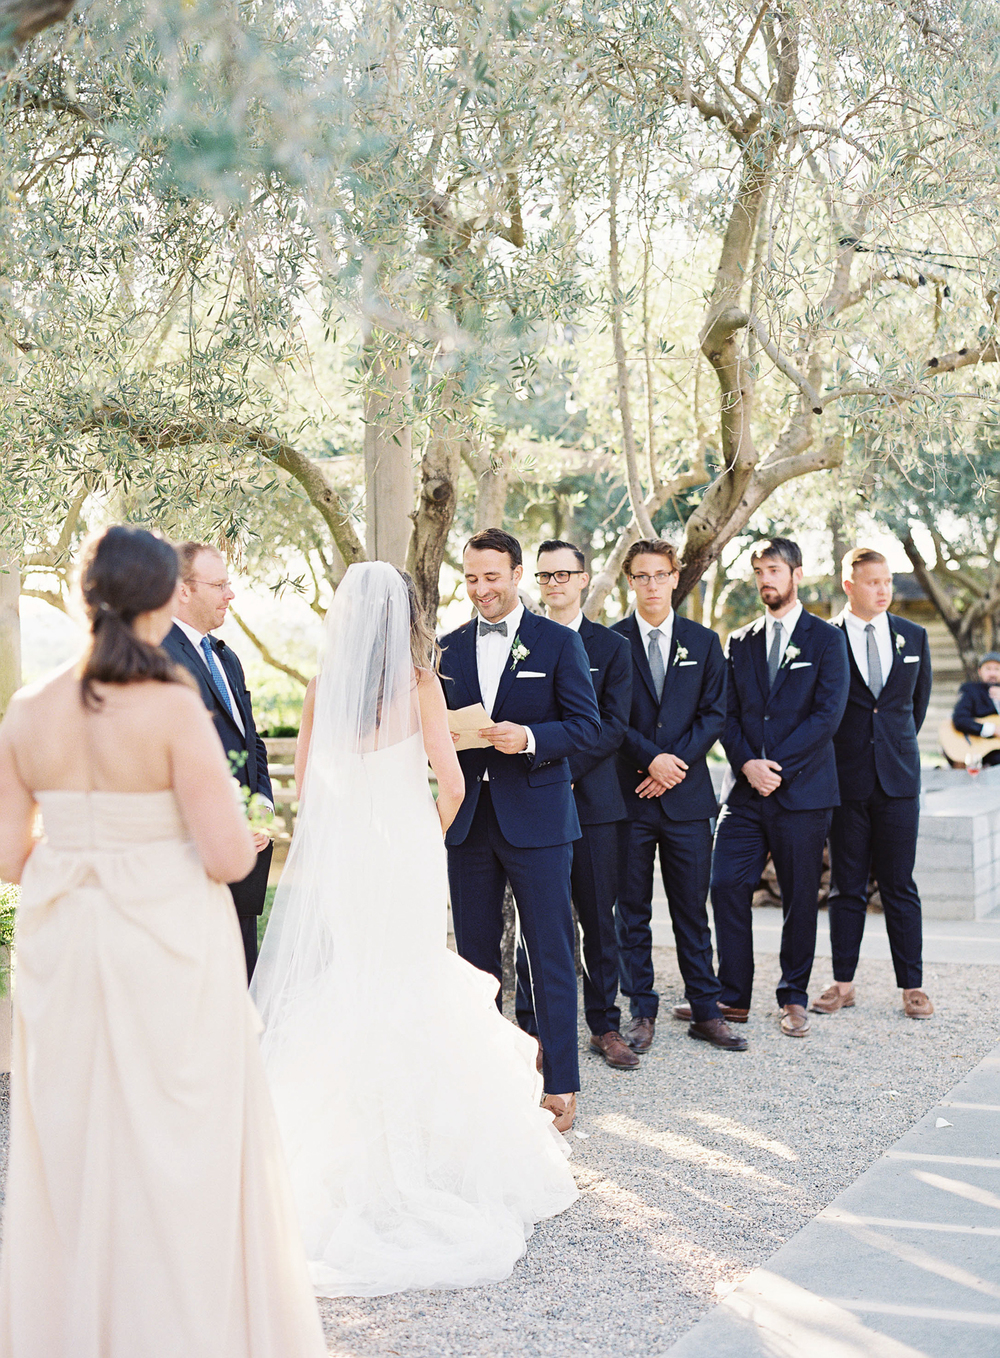 Meghan Mehan Photography - Fine Art Film Wedding Photography - San Francisco | Napa | Sonoma | Big Sur | Chicago | Minneapolis | Milwaukee | Lake Geneva | Door County | Wisconsin 025.jpg